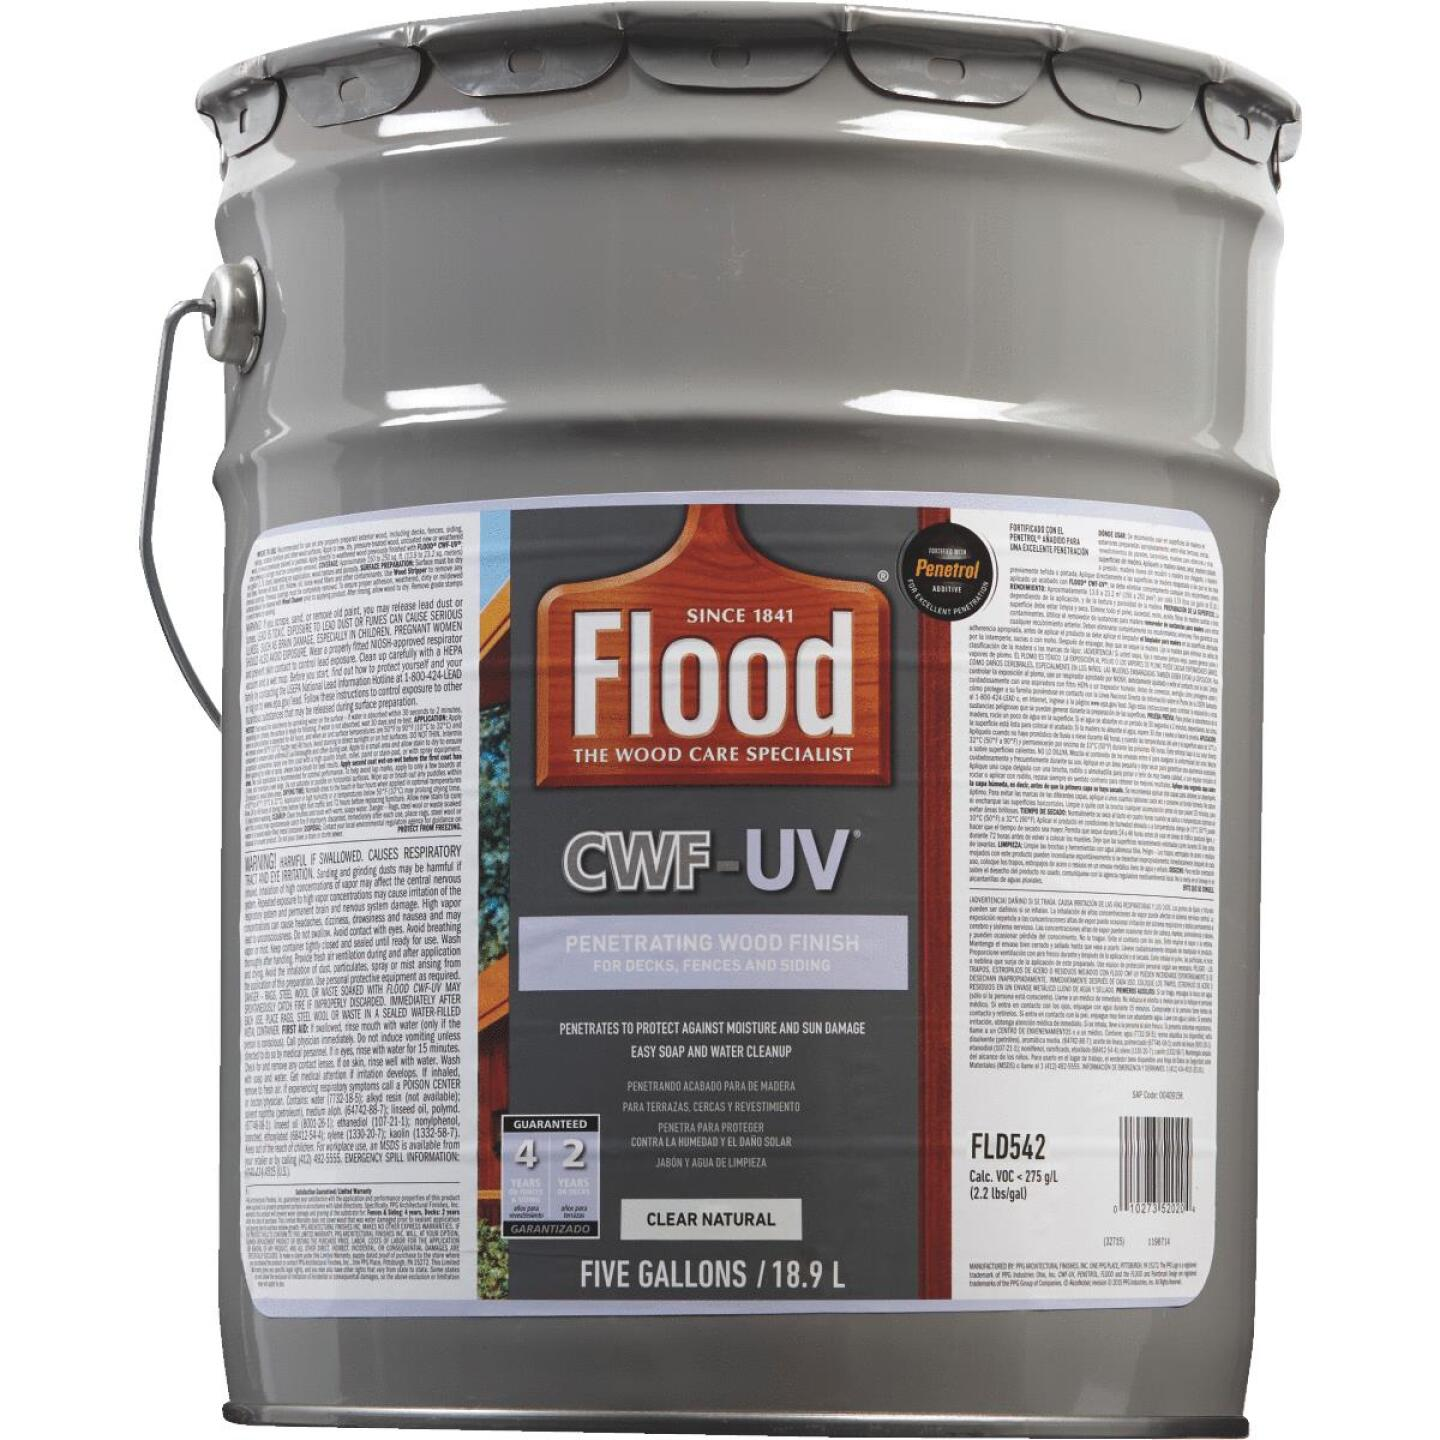 Flood CWF-UV Oil-Modified Fence Deck and Siding Wood Finish, Natural, 5 Gal. Image 2